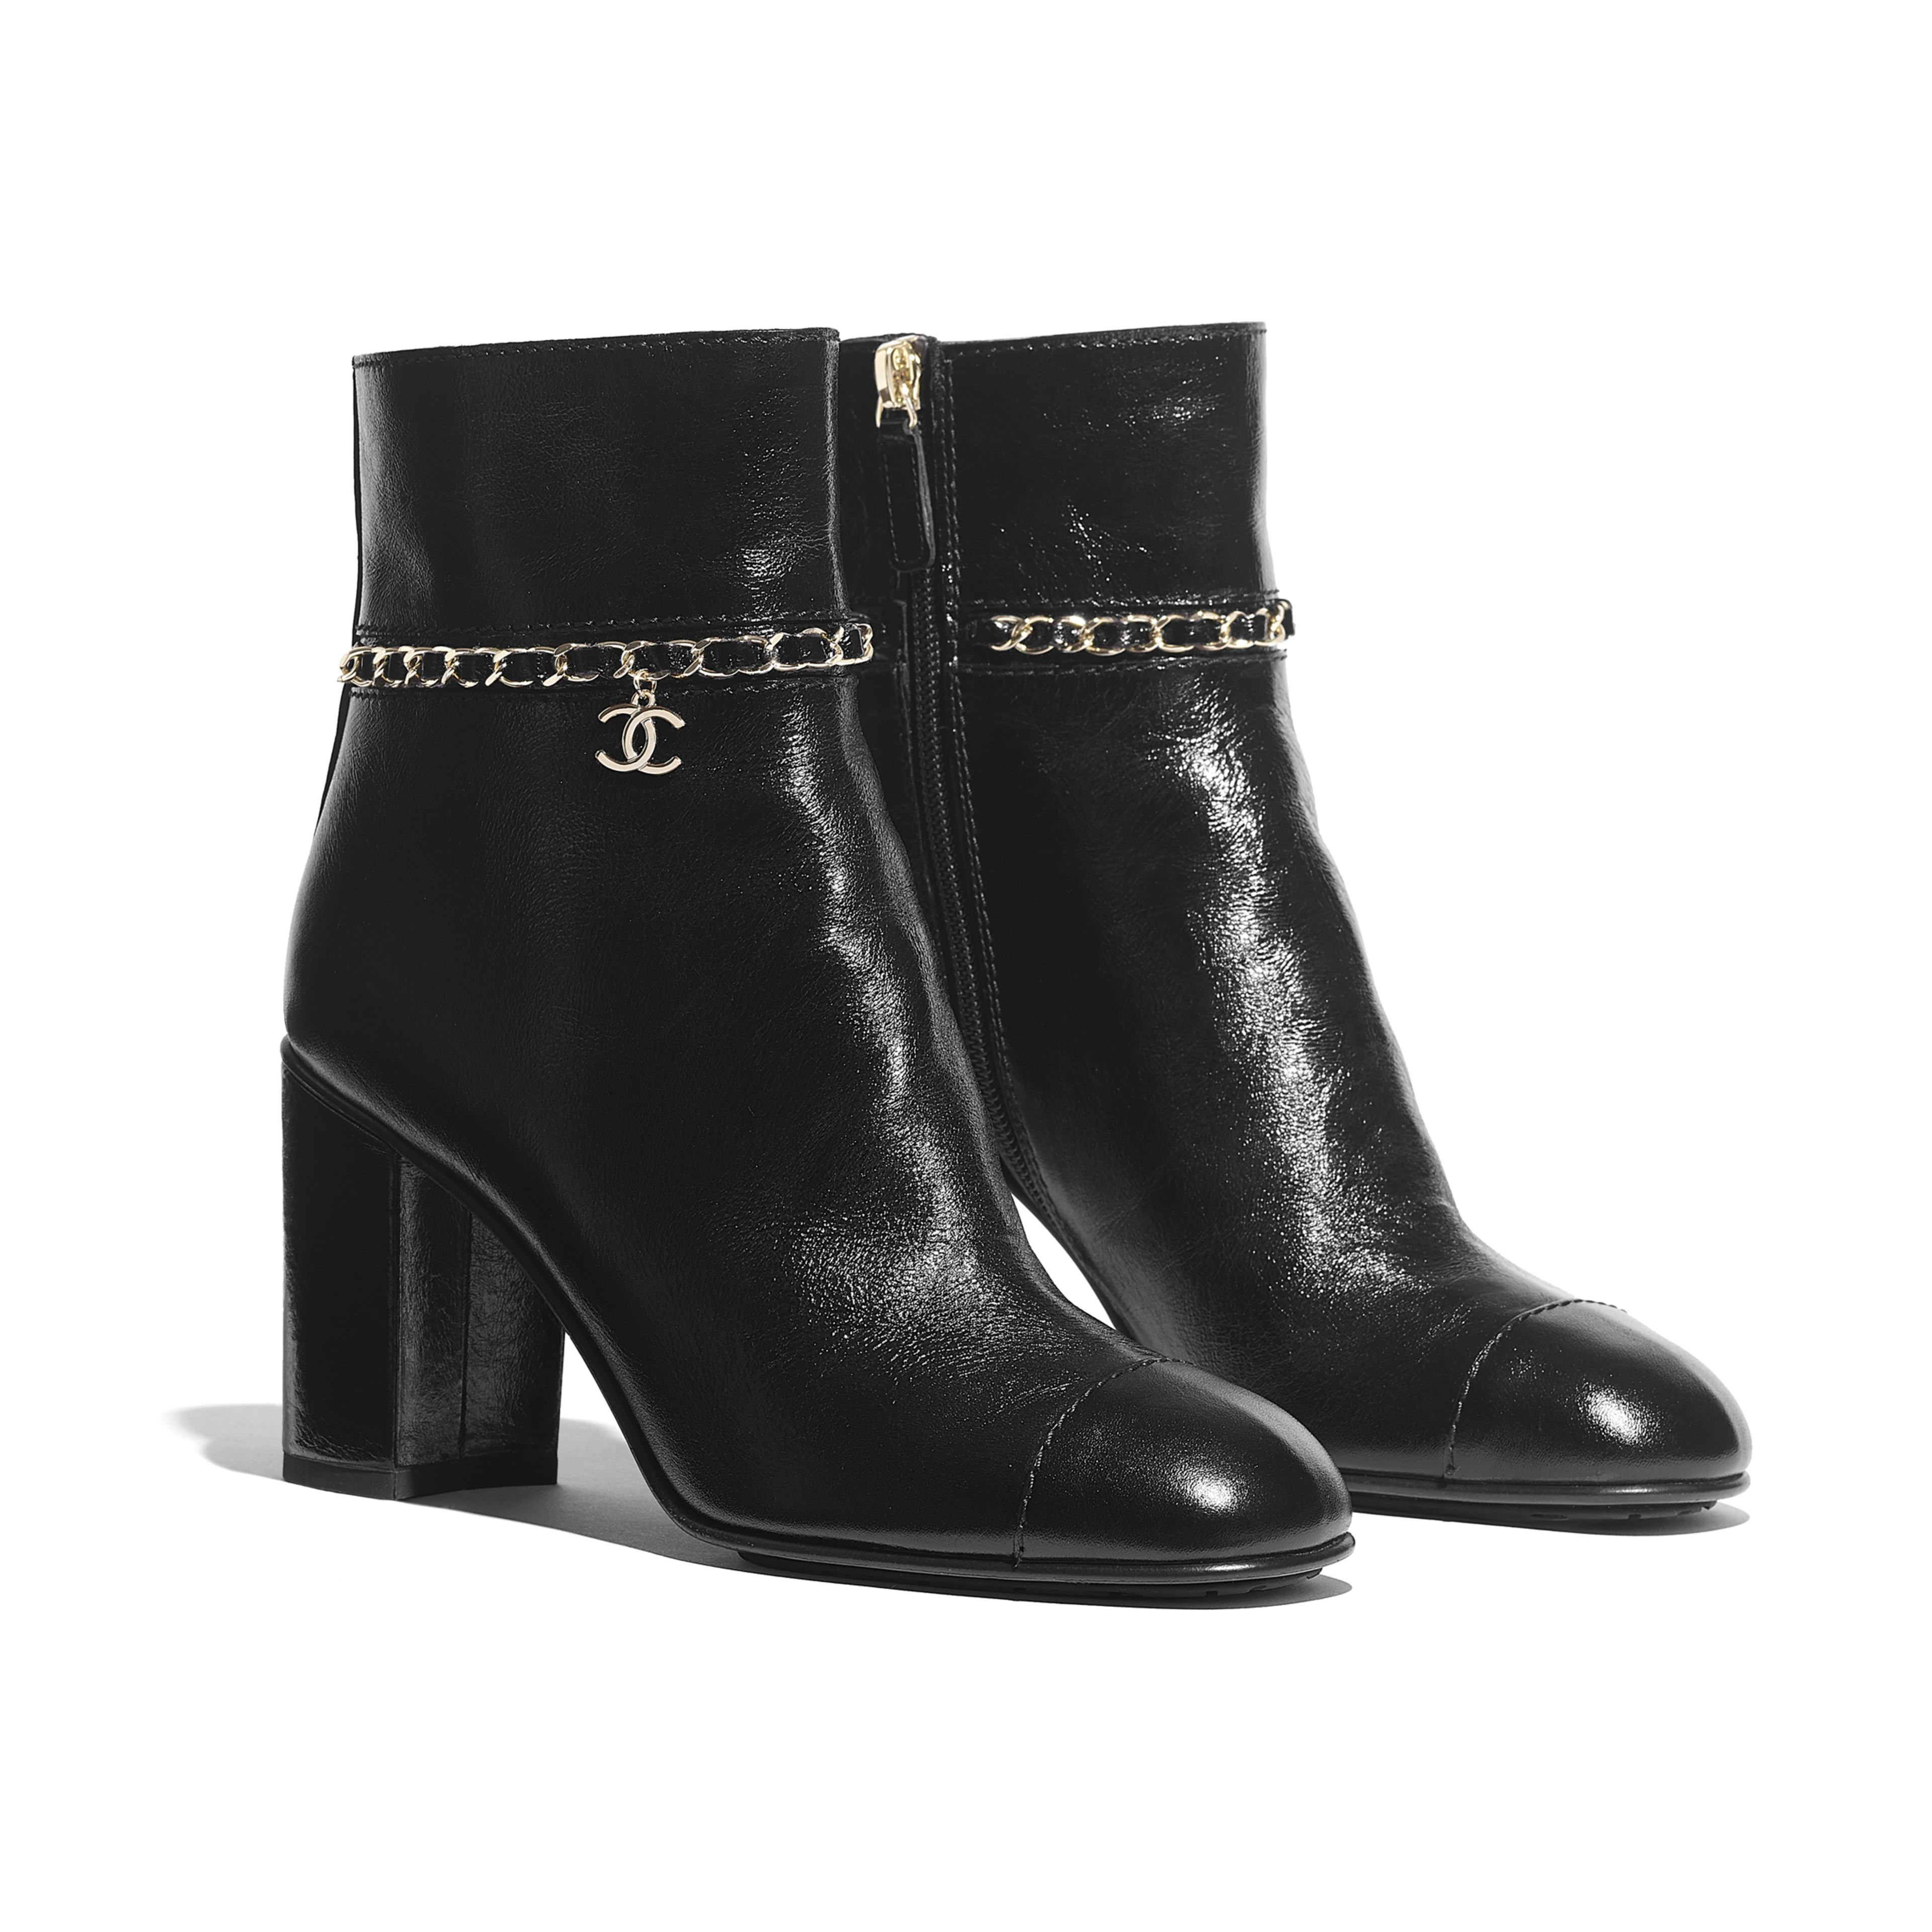 Chanel boots, Boots, Black ankle boots